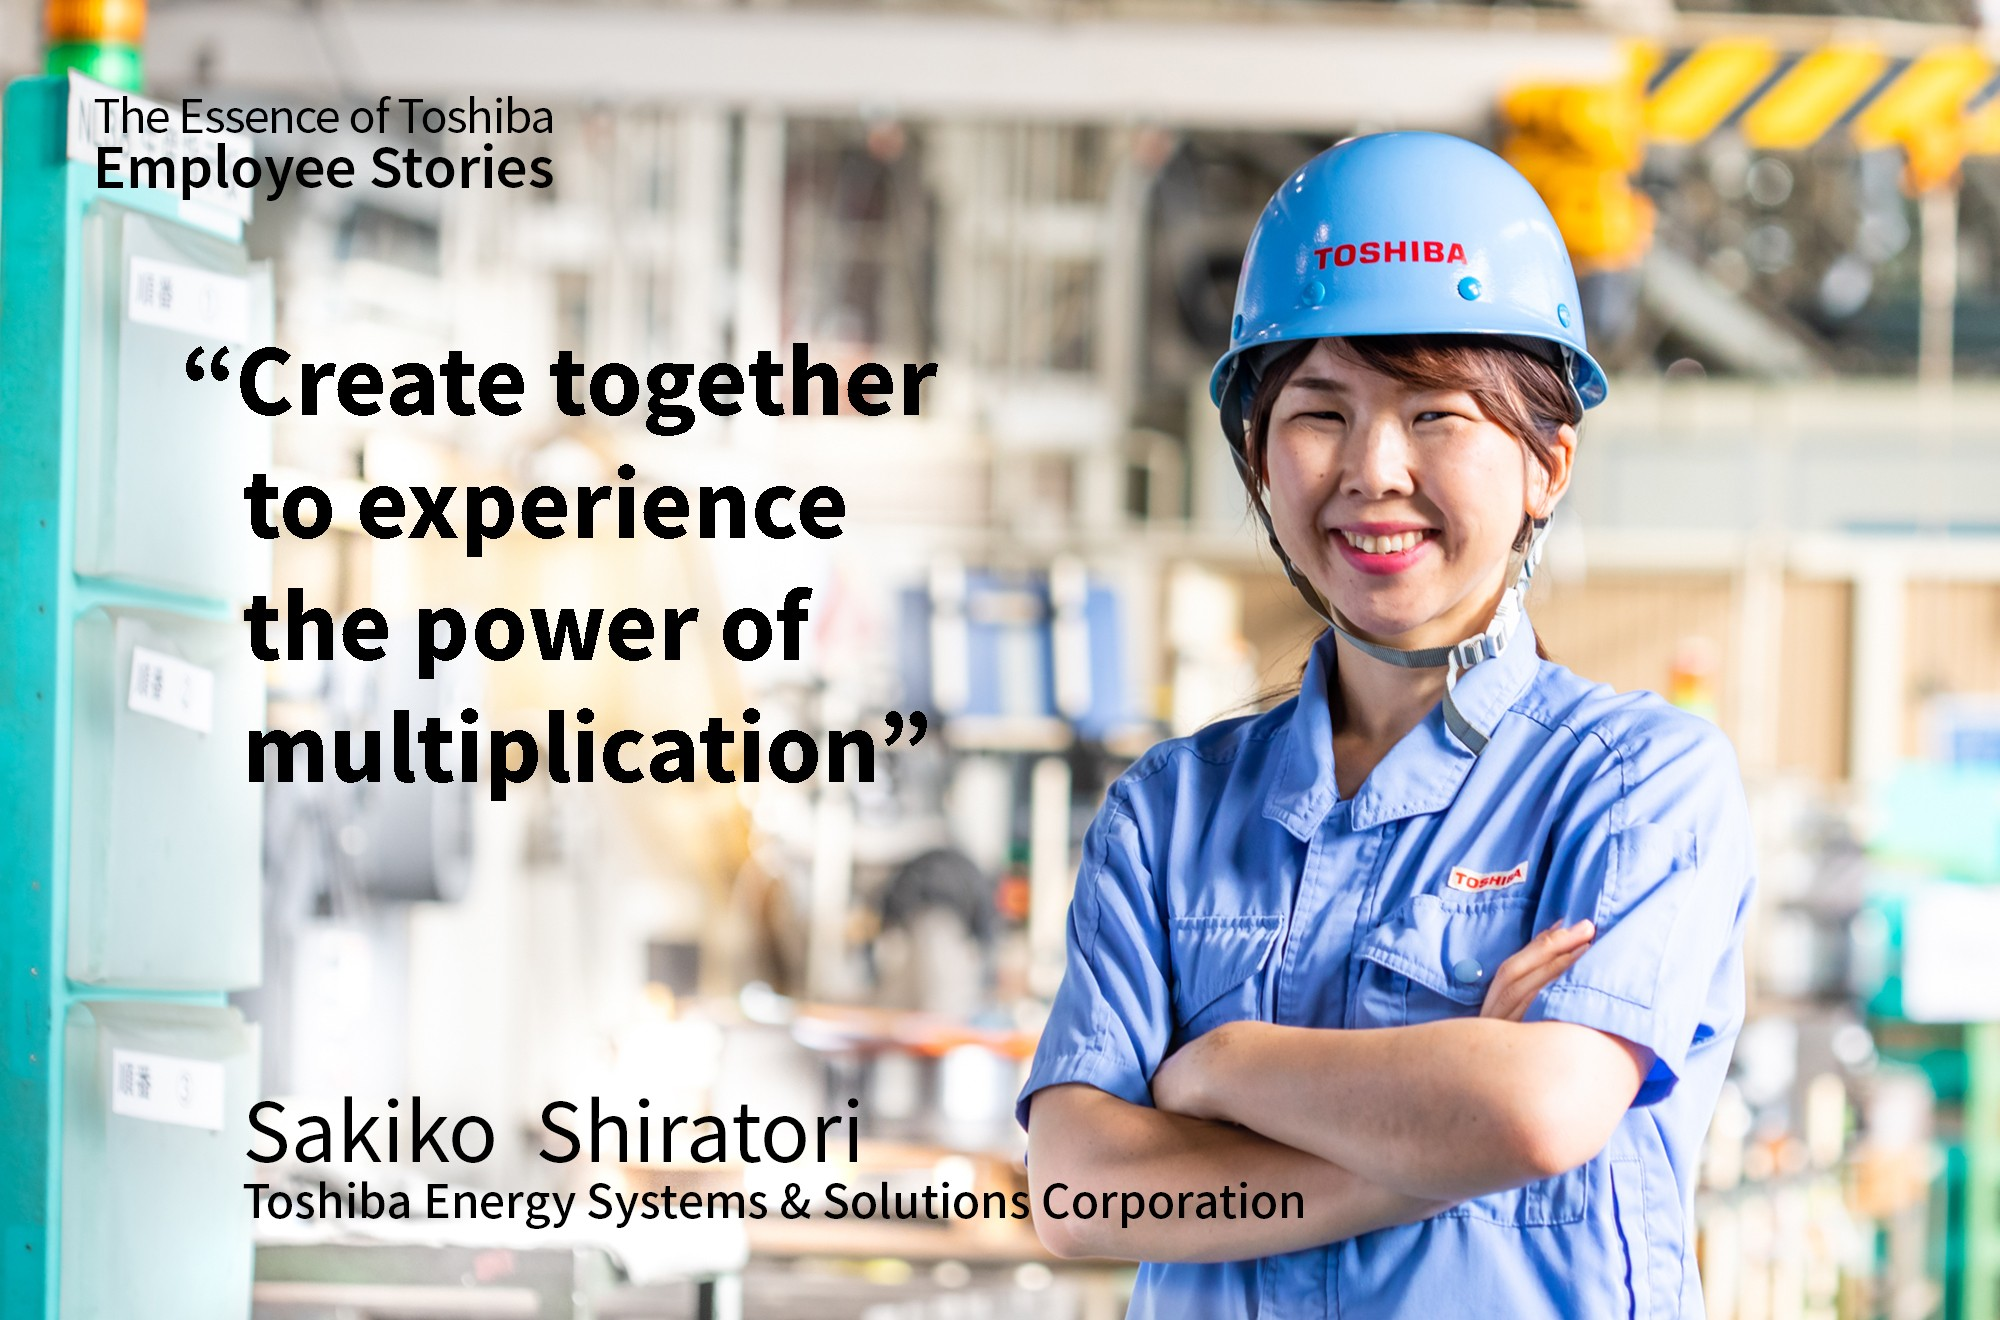 We Are Toshiba: Create Together to Experience the Power of Multiplication